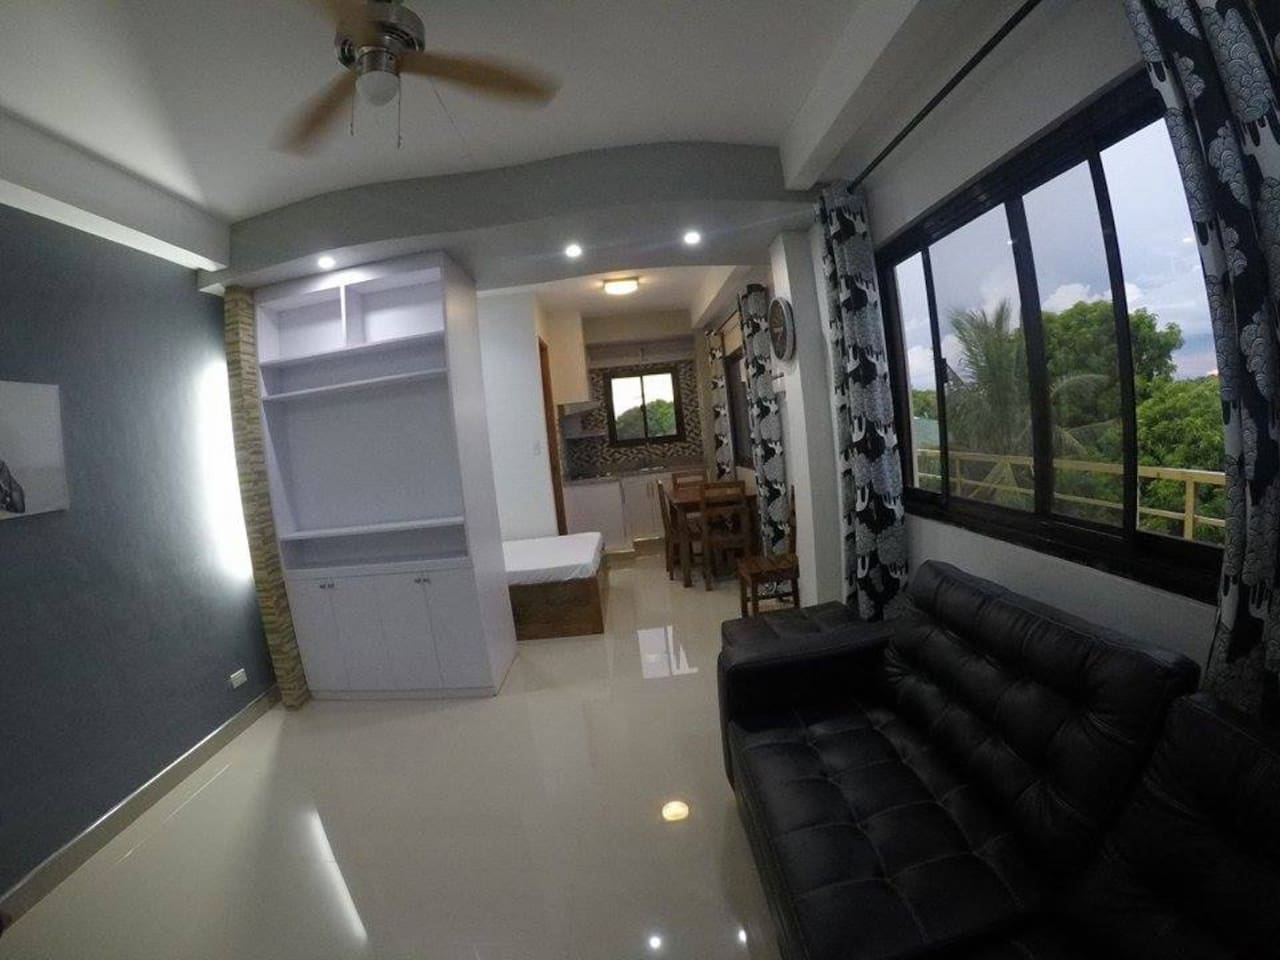 The Most Exclusive Vacation Home Rental in Dagupan City. Delivering a home away from home experience. Together, we can make memories and history.